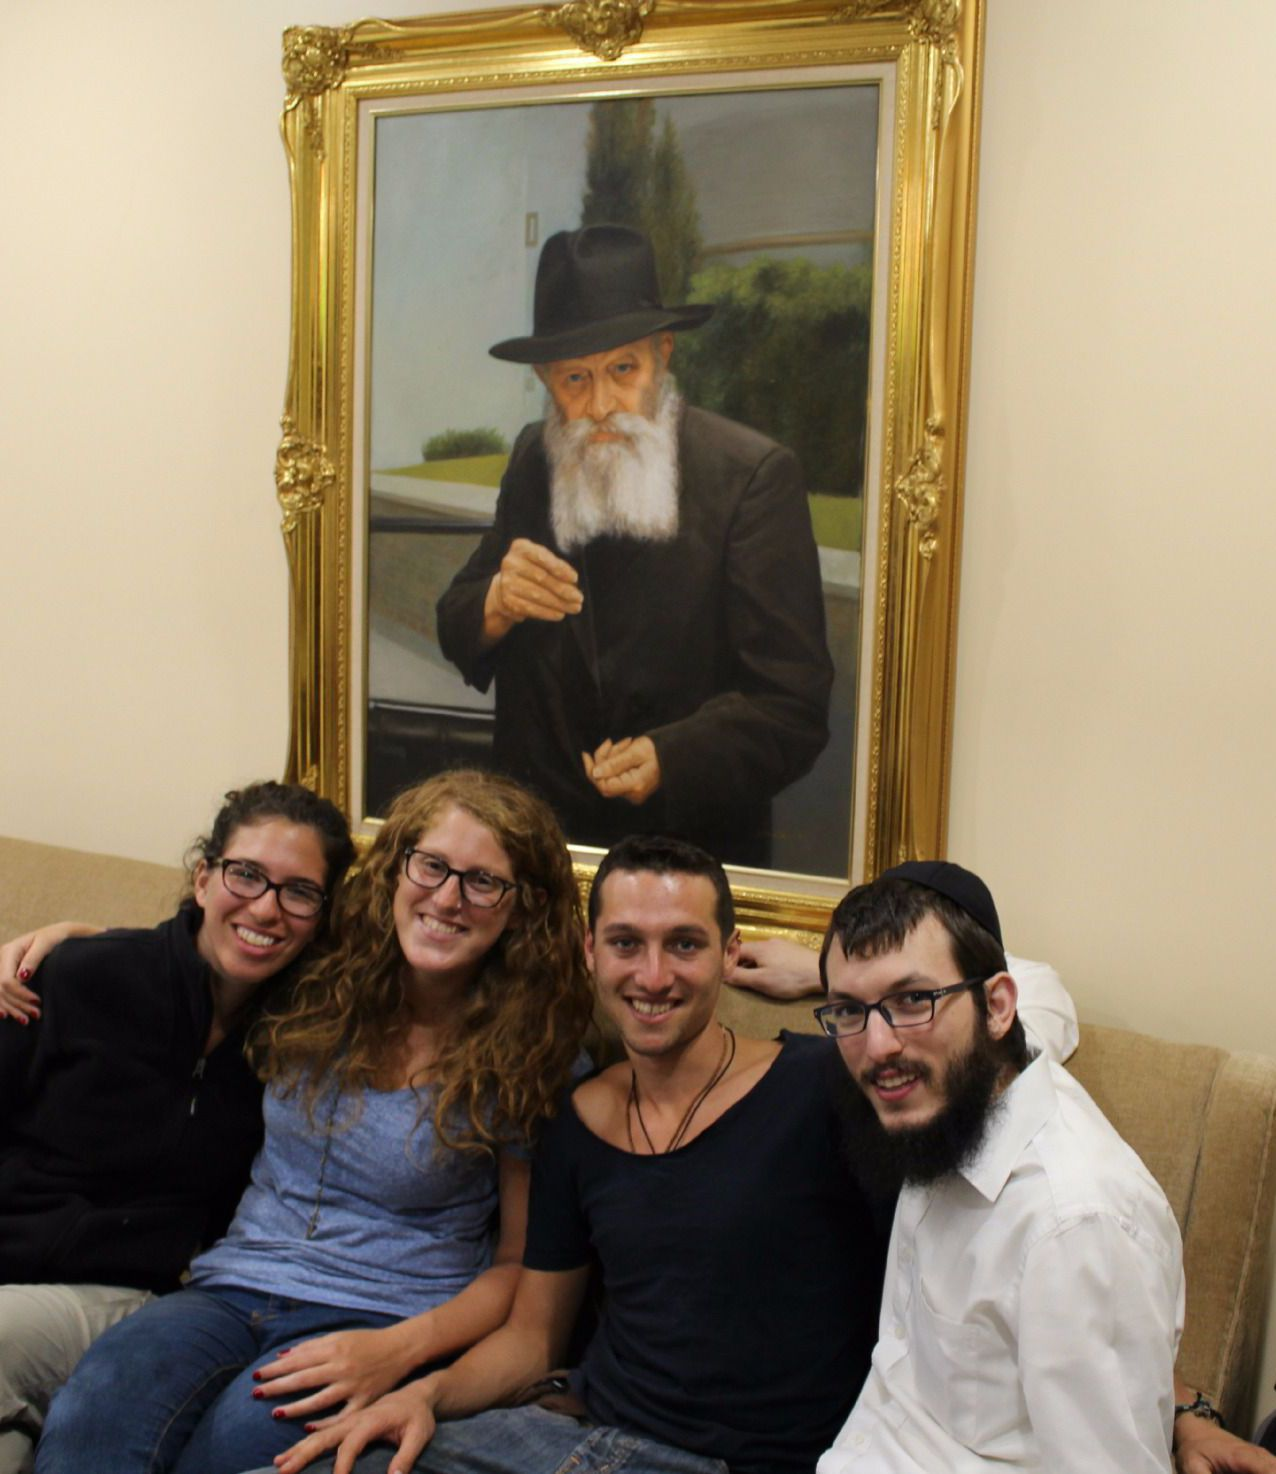 Under the Rebbe: Chabad Rabbi Israel Kozlowsky with Israeli tourists.